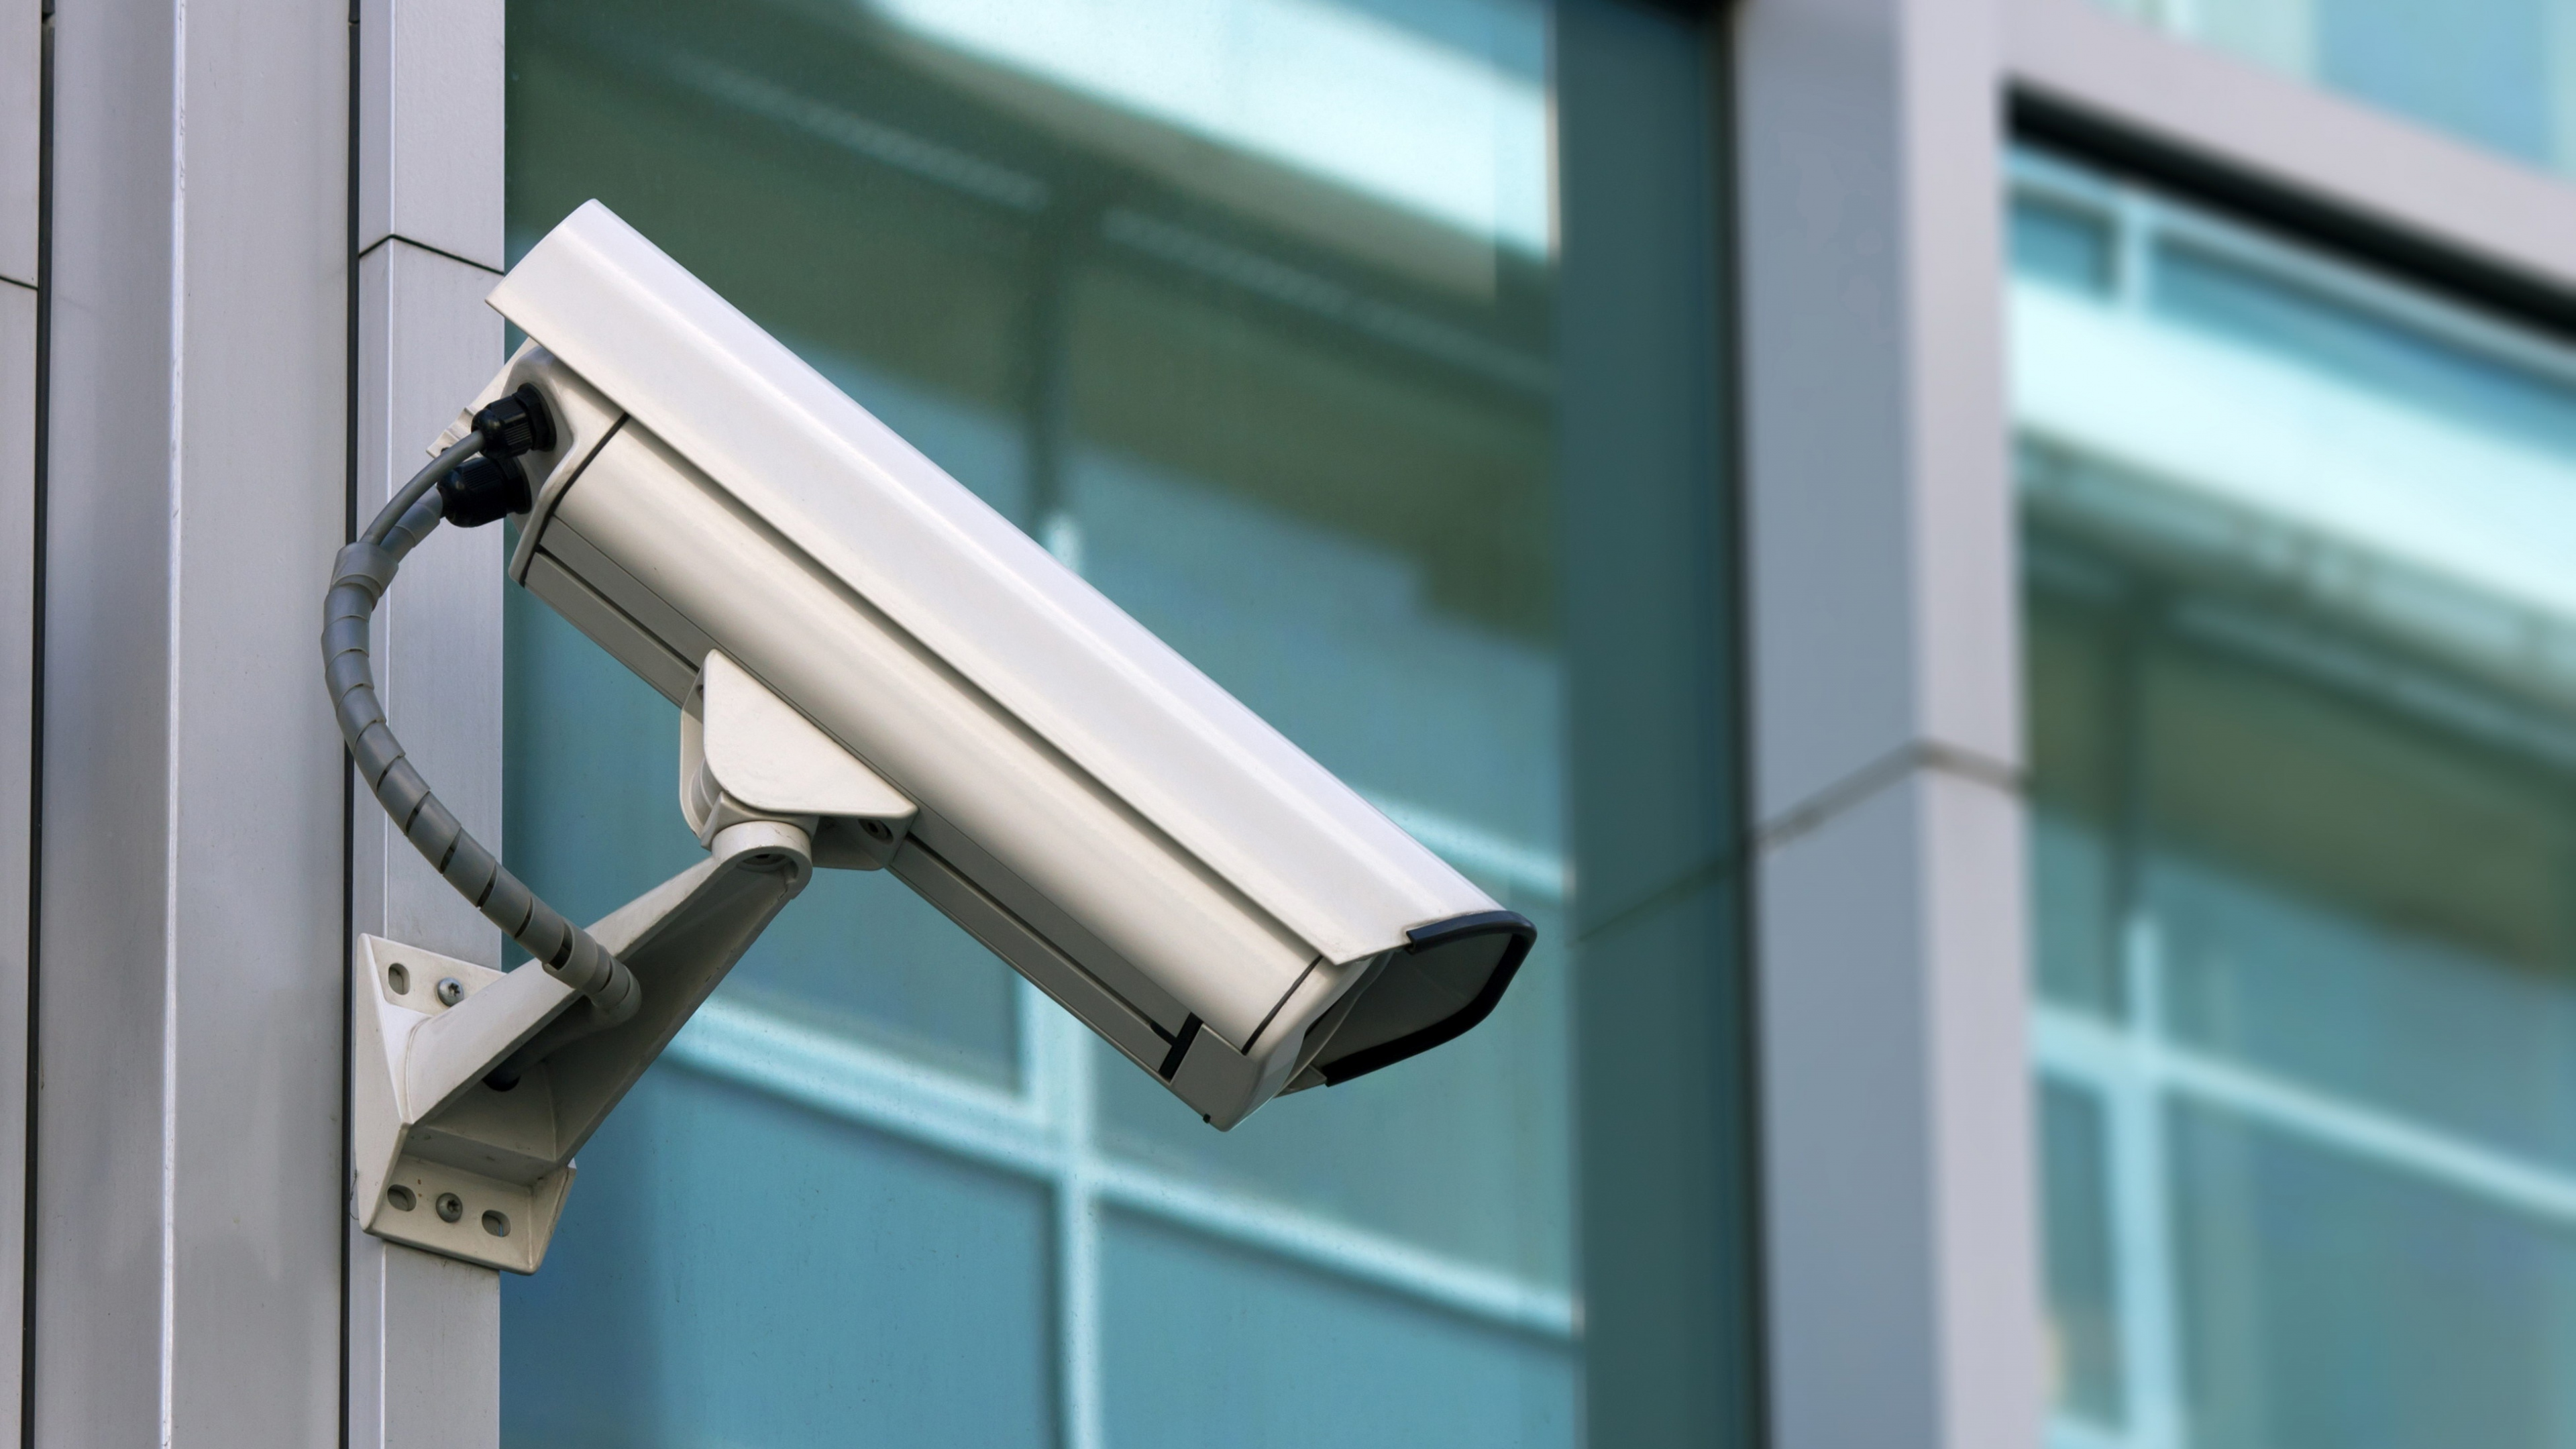 cctv_camera_security_80080_3840x2160